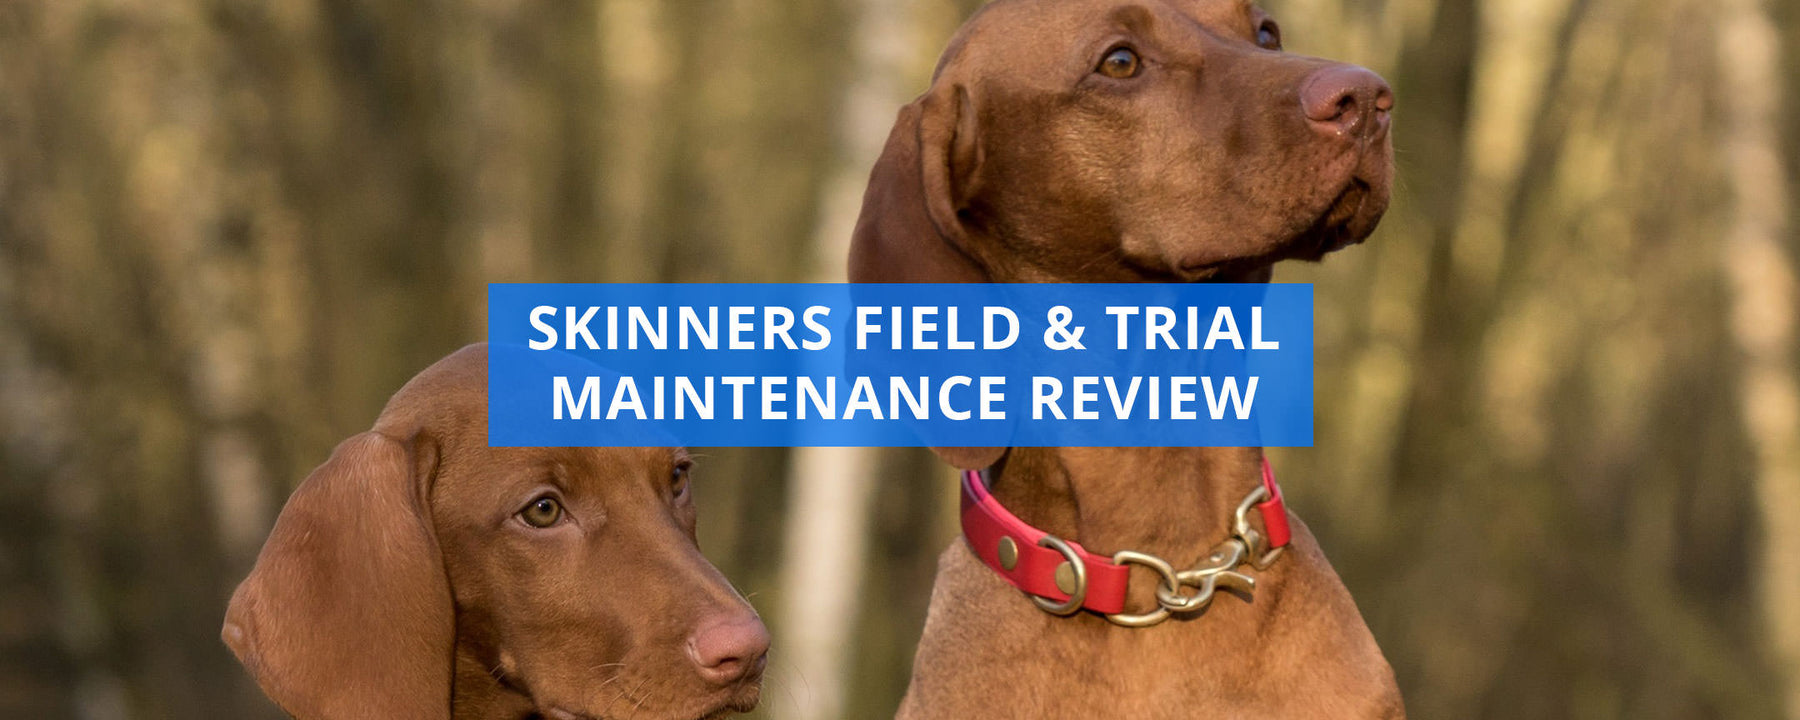 Skinners Field And Trial Maintenance Review